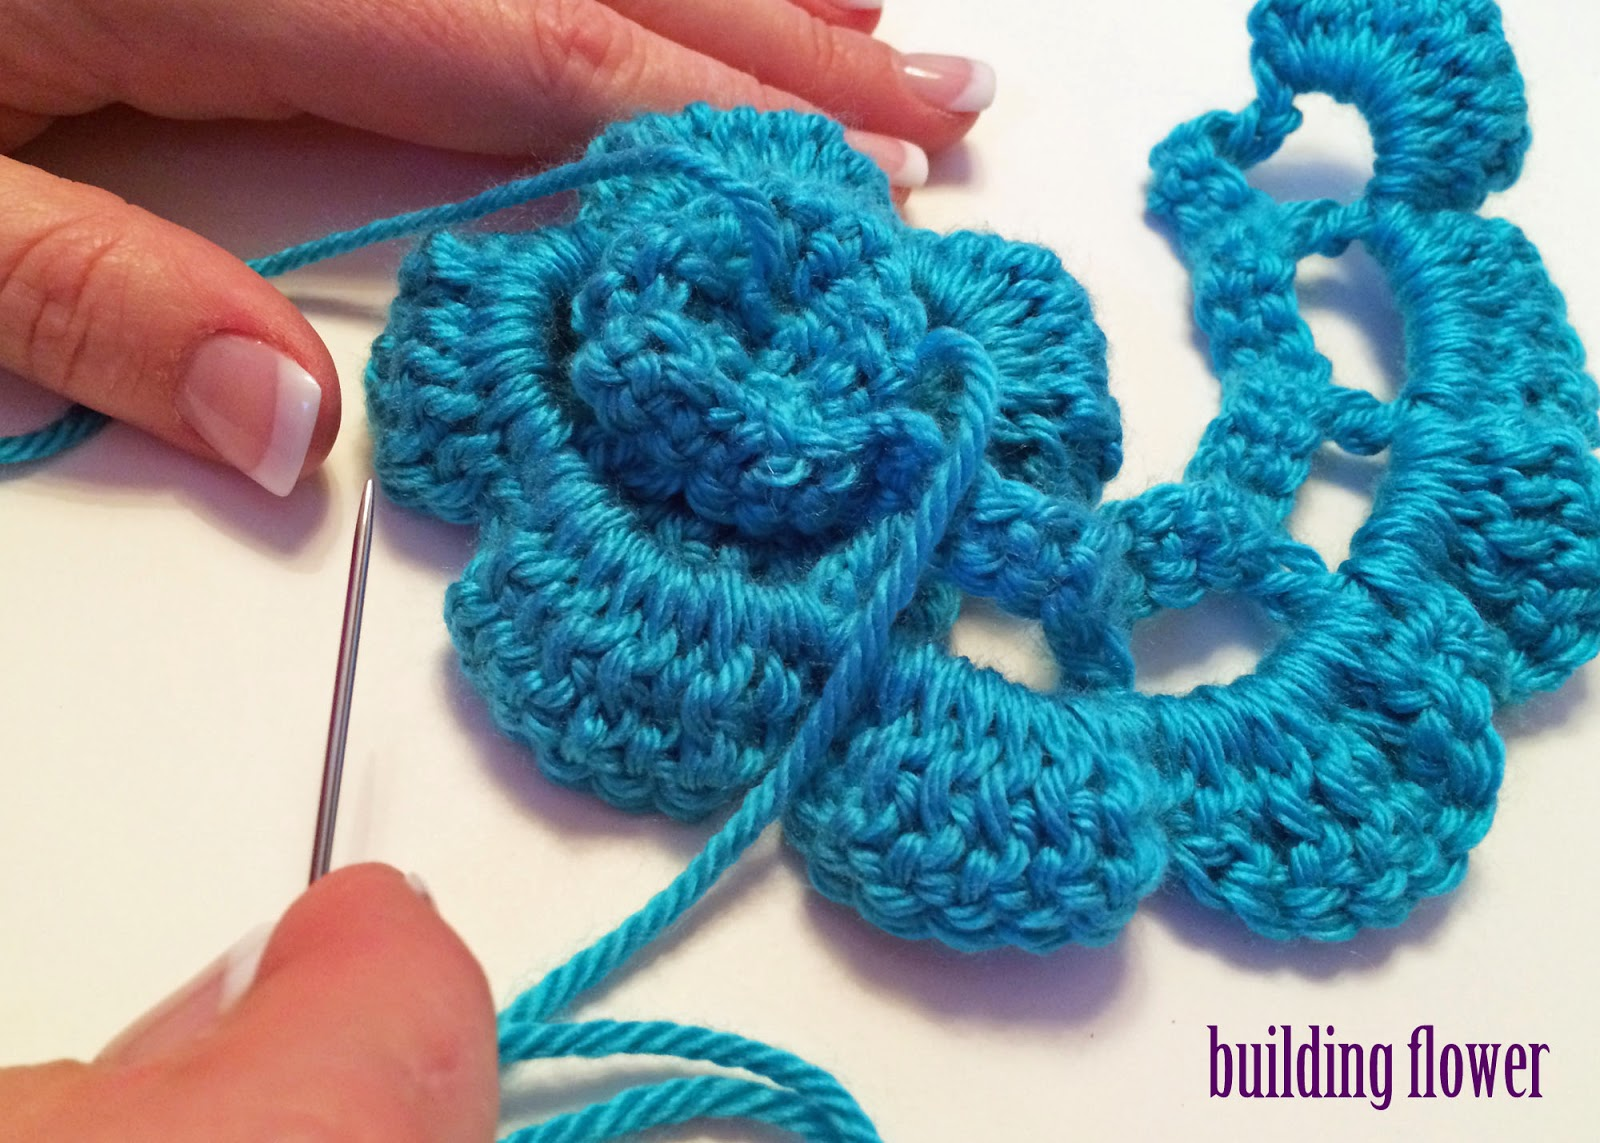 Basic Crochet Flower Patterns Free : Crochet Rochelle: Double Crochet Flower